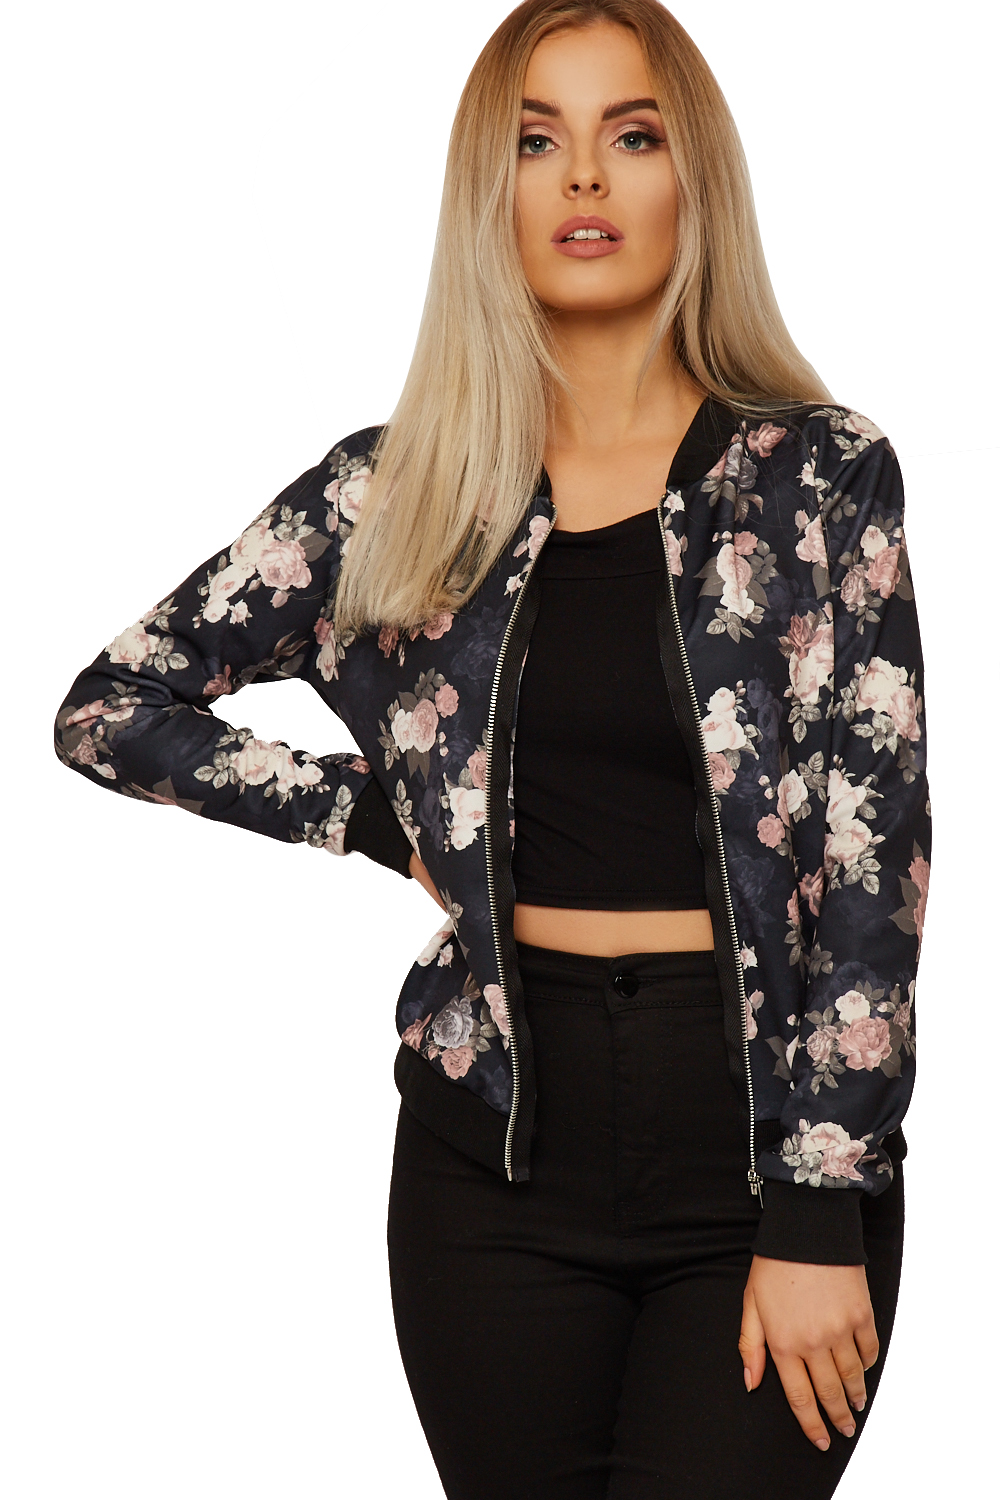 Womens Floral Bomber Jacket Ladies Long Sleeve Rose Print Zip Crew Neck New  8-14 - Womens Floral Bomber Jacket Ladies Long Sleeve Rose Print Zip Crew